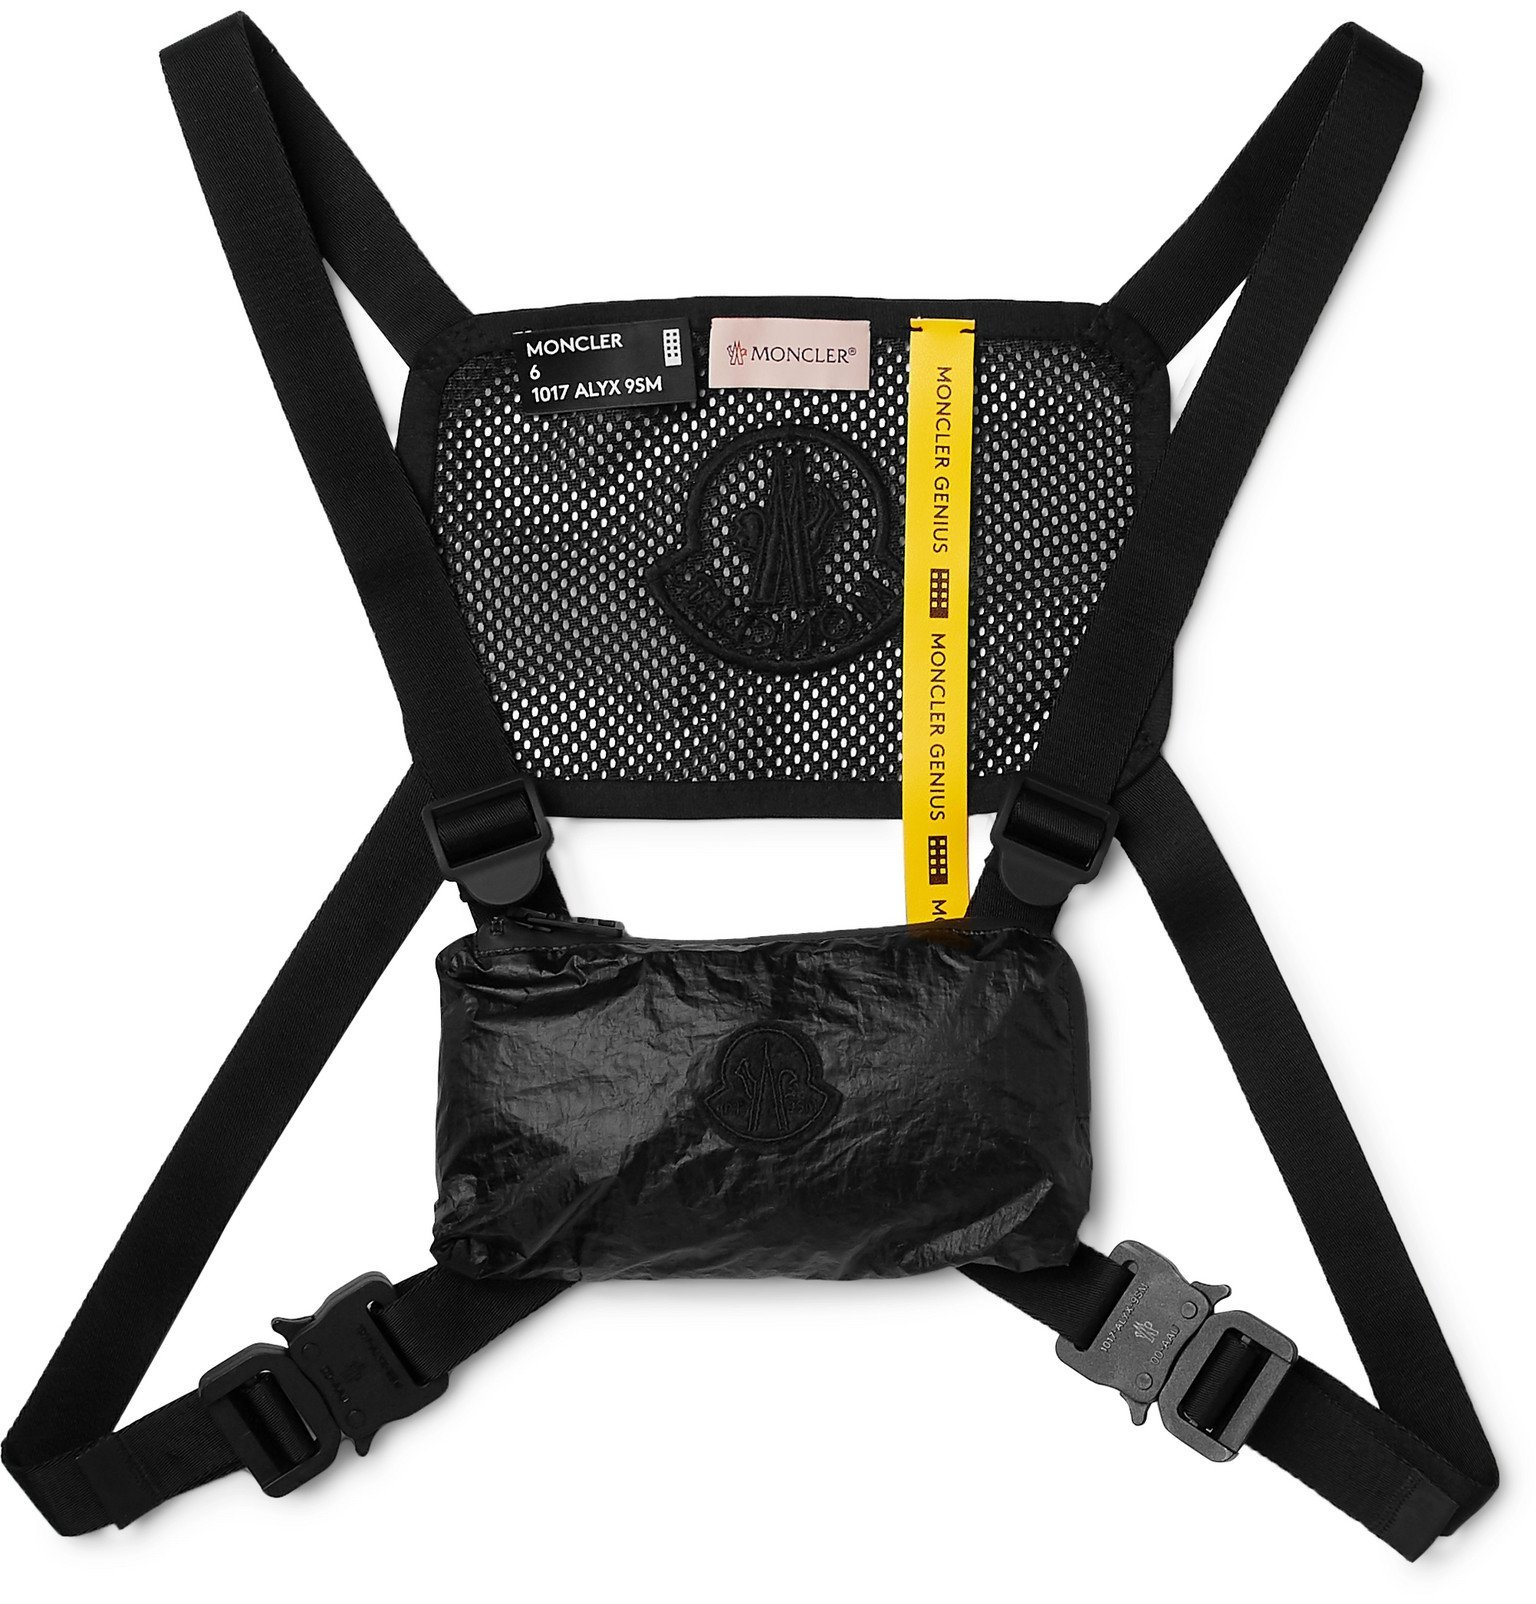 Photo: Moncler Genius - 6 Moncler 1017 ALYX 9SM Mesh and Shell Harness - Black